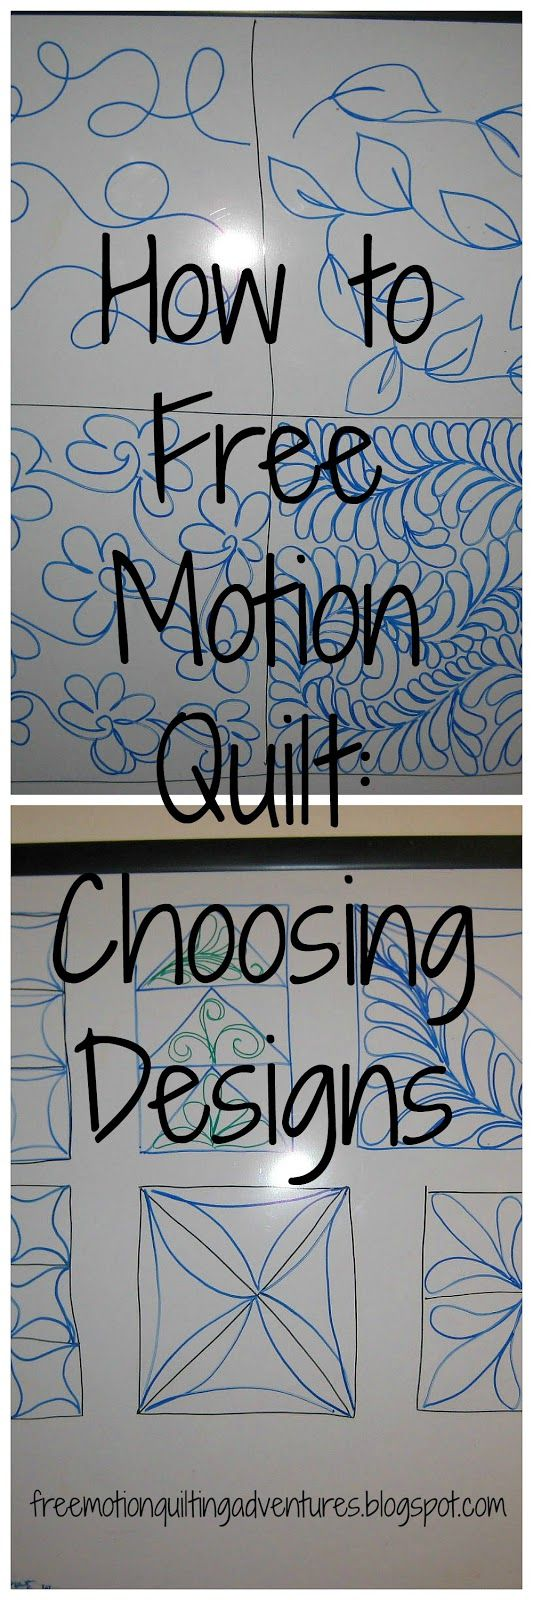 Amy's Free Motion Quilting Adventures: How to Free Motion Quilt: The Designs